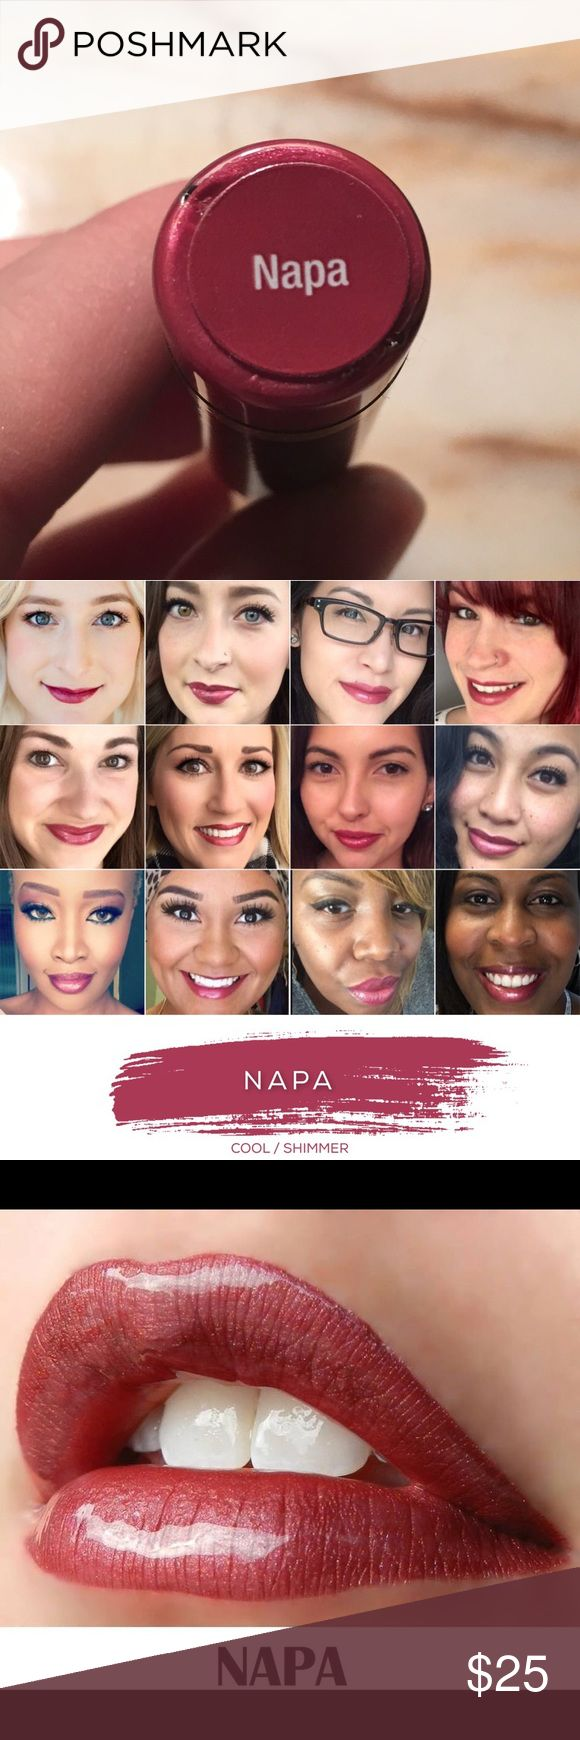 LipSense NAPA Best-Selling Waterproof Lipstick Brand new, sealed LipSense waterproof, smudge-proof, smear-proof, kiss-proof, gluten-free, lead-free & vegan lipstick in Napa! LipSense Makeup Lipstick